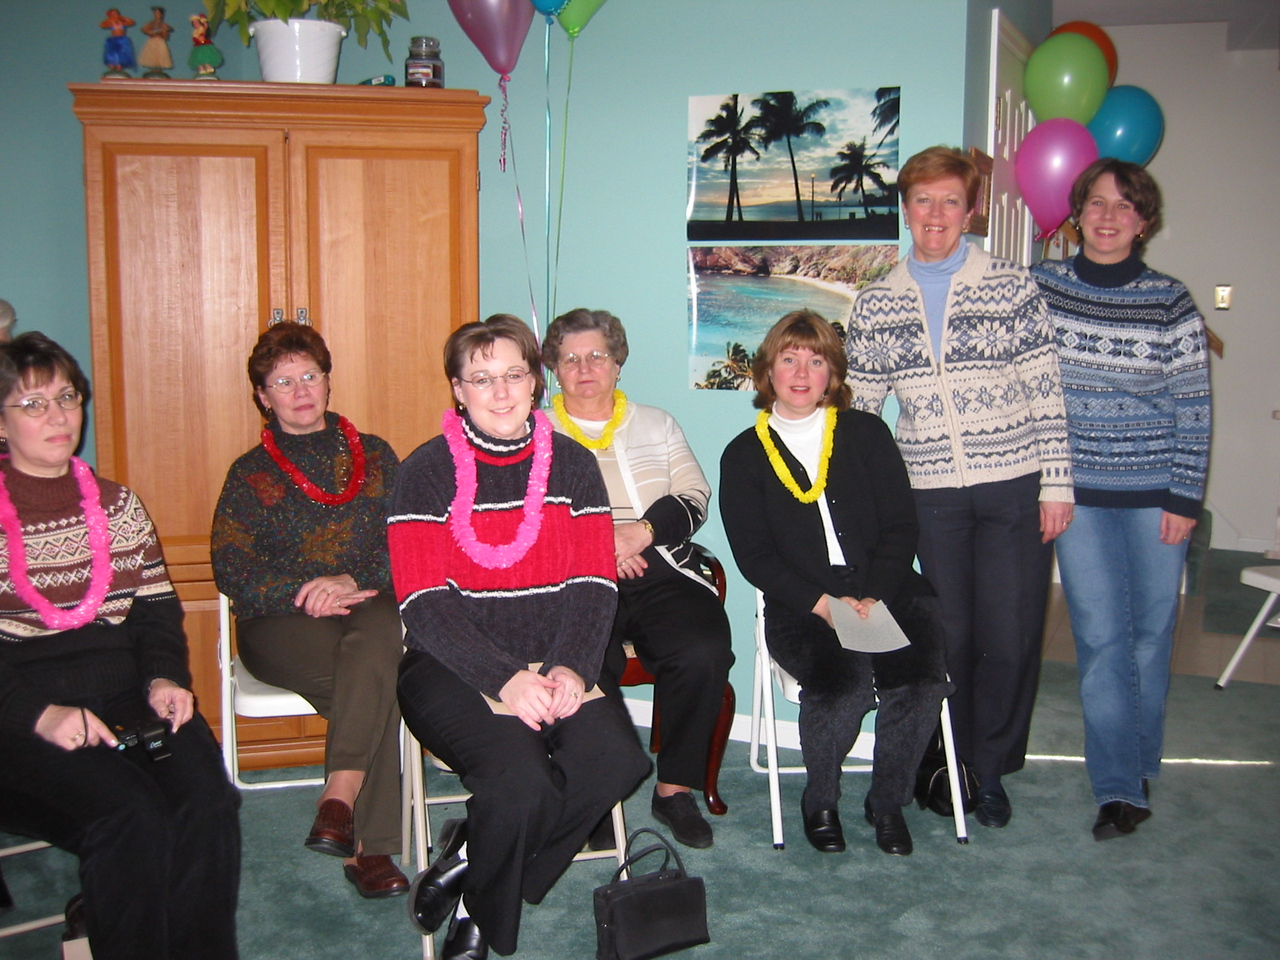 Debbie, Mary, Carrie, Grace, Elaine, Me and Amy (Ilsa's Matron of Honor and hostess of the shower)